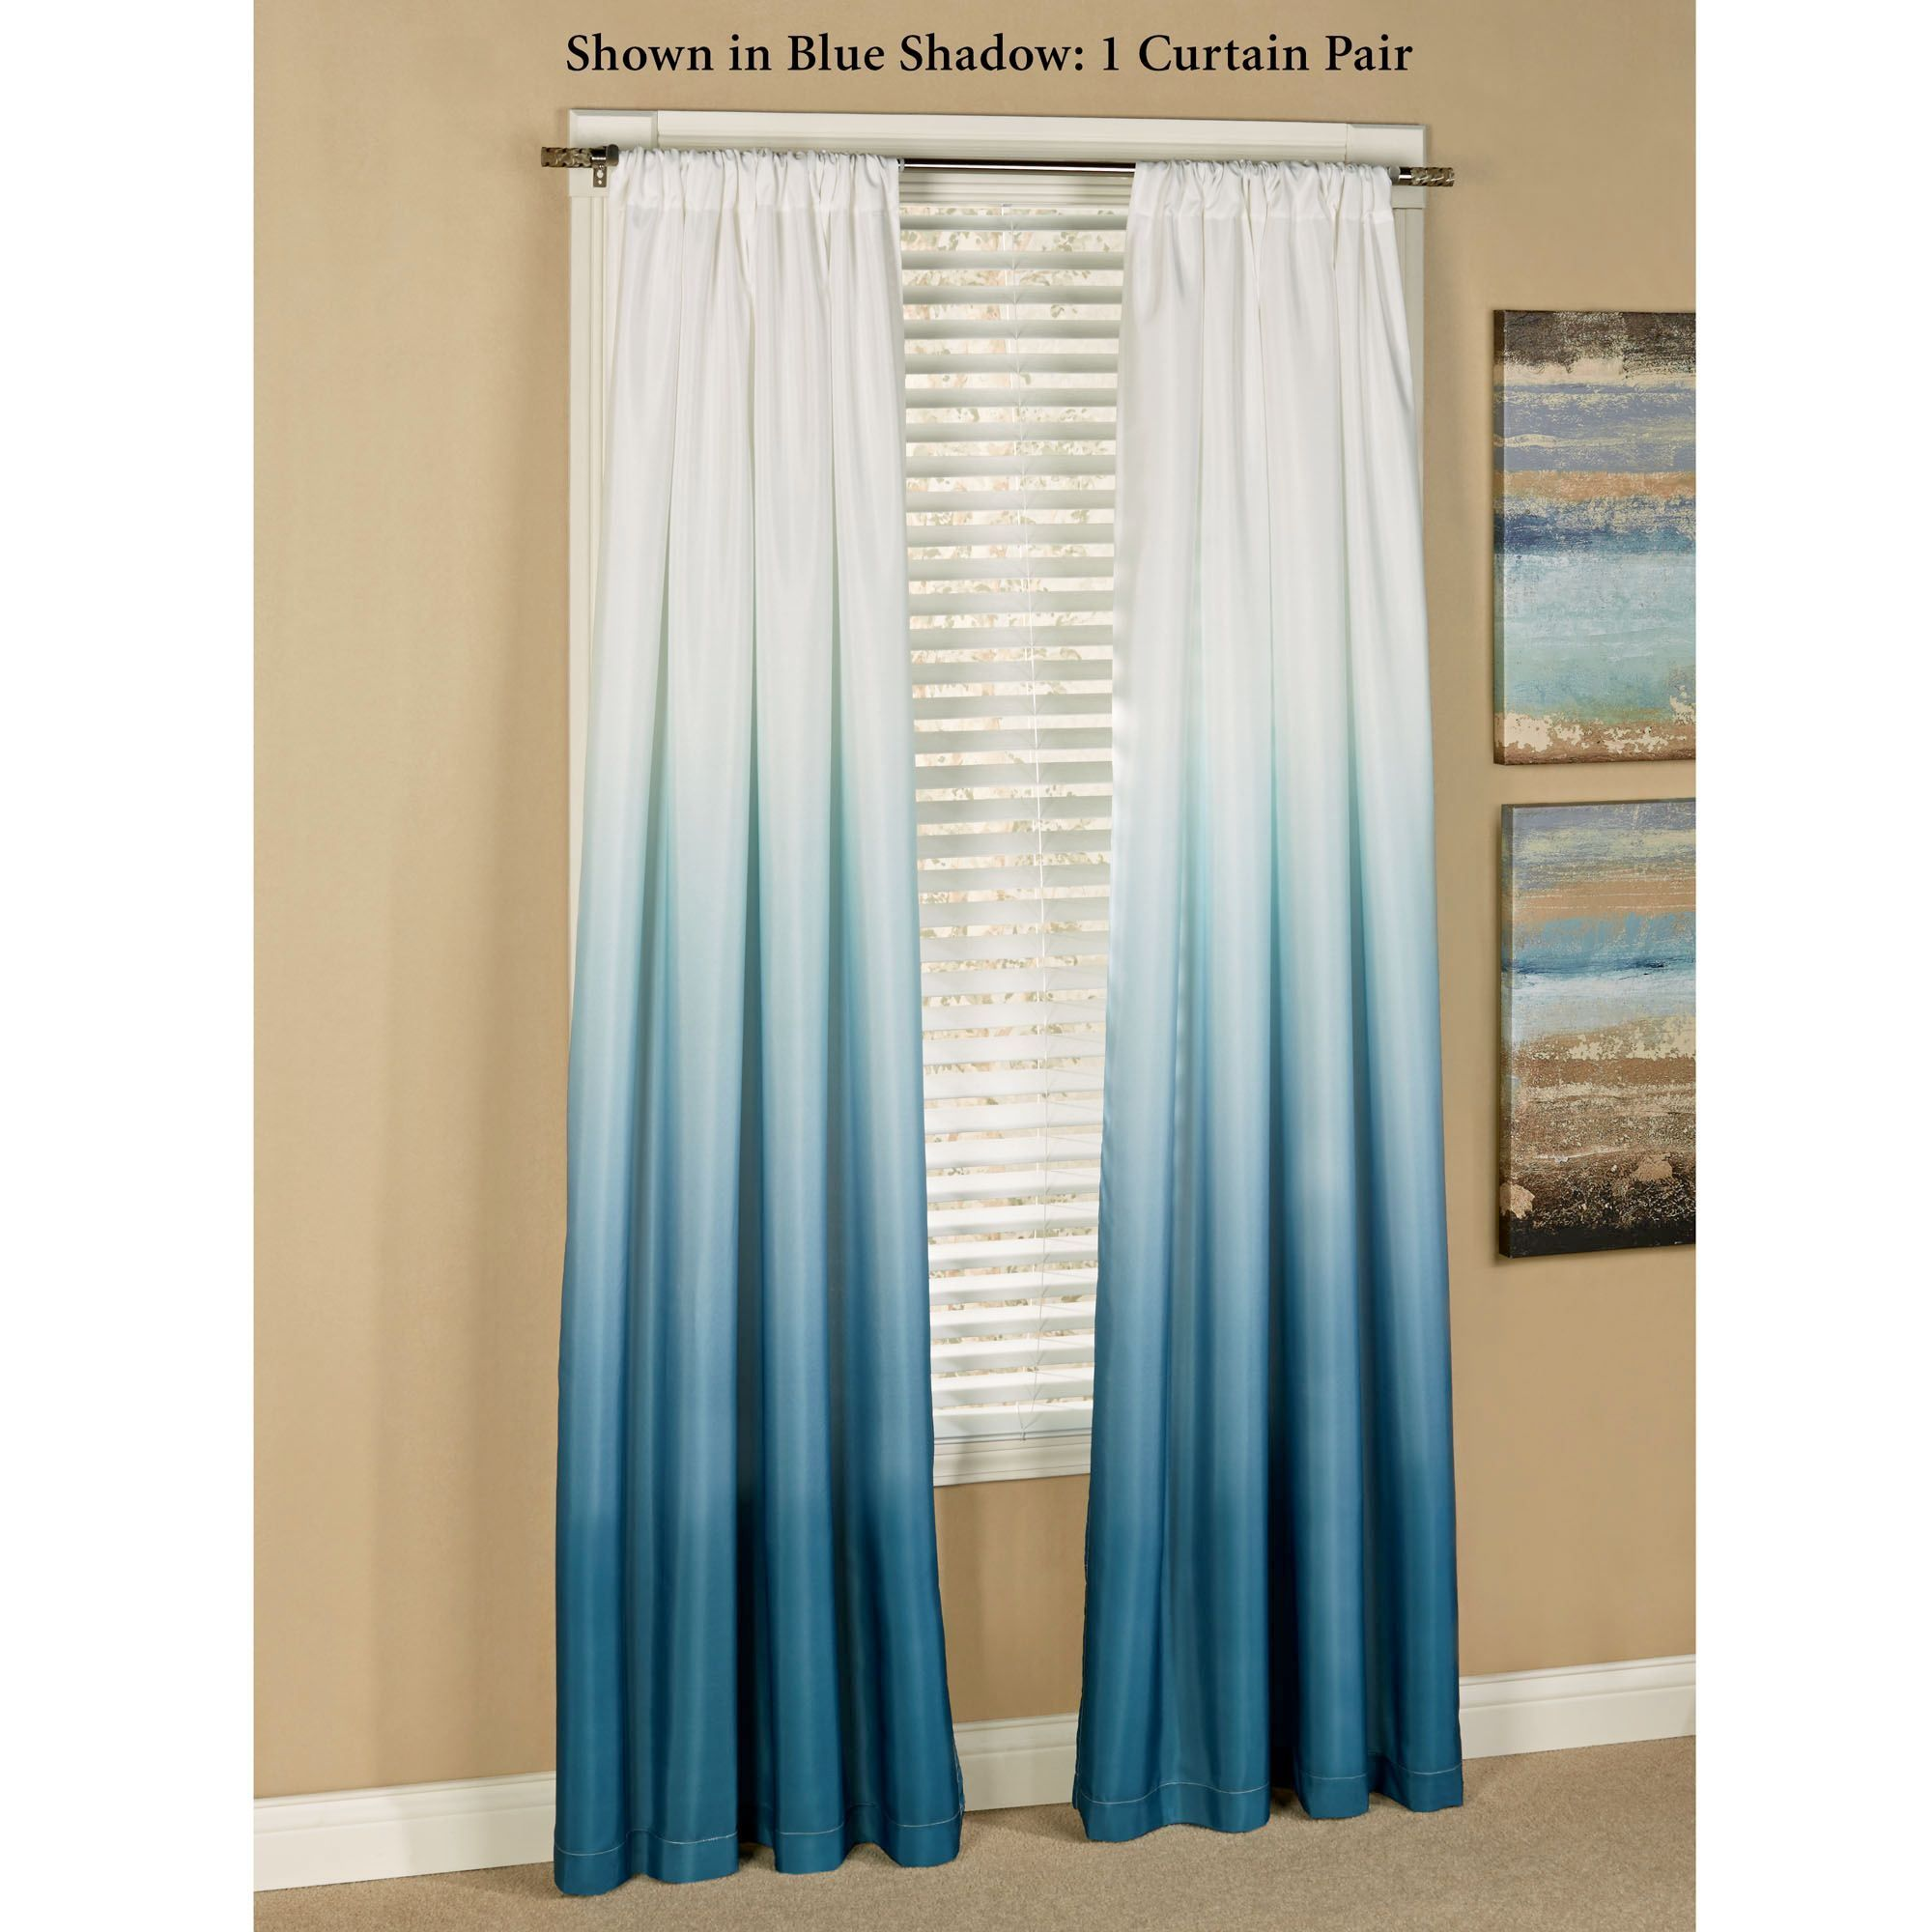 Shades Ombre Curtains Ombre Curtains Living Room Decor Curtains